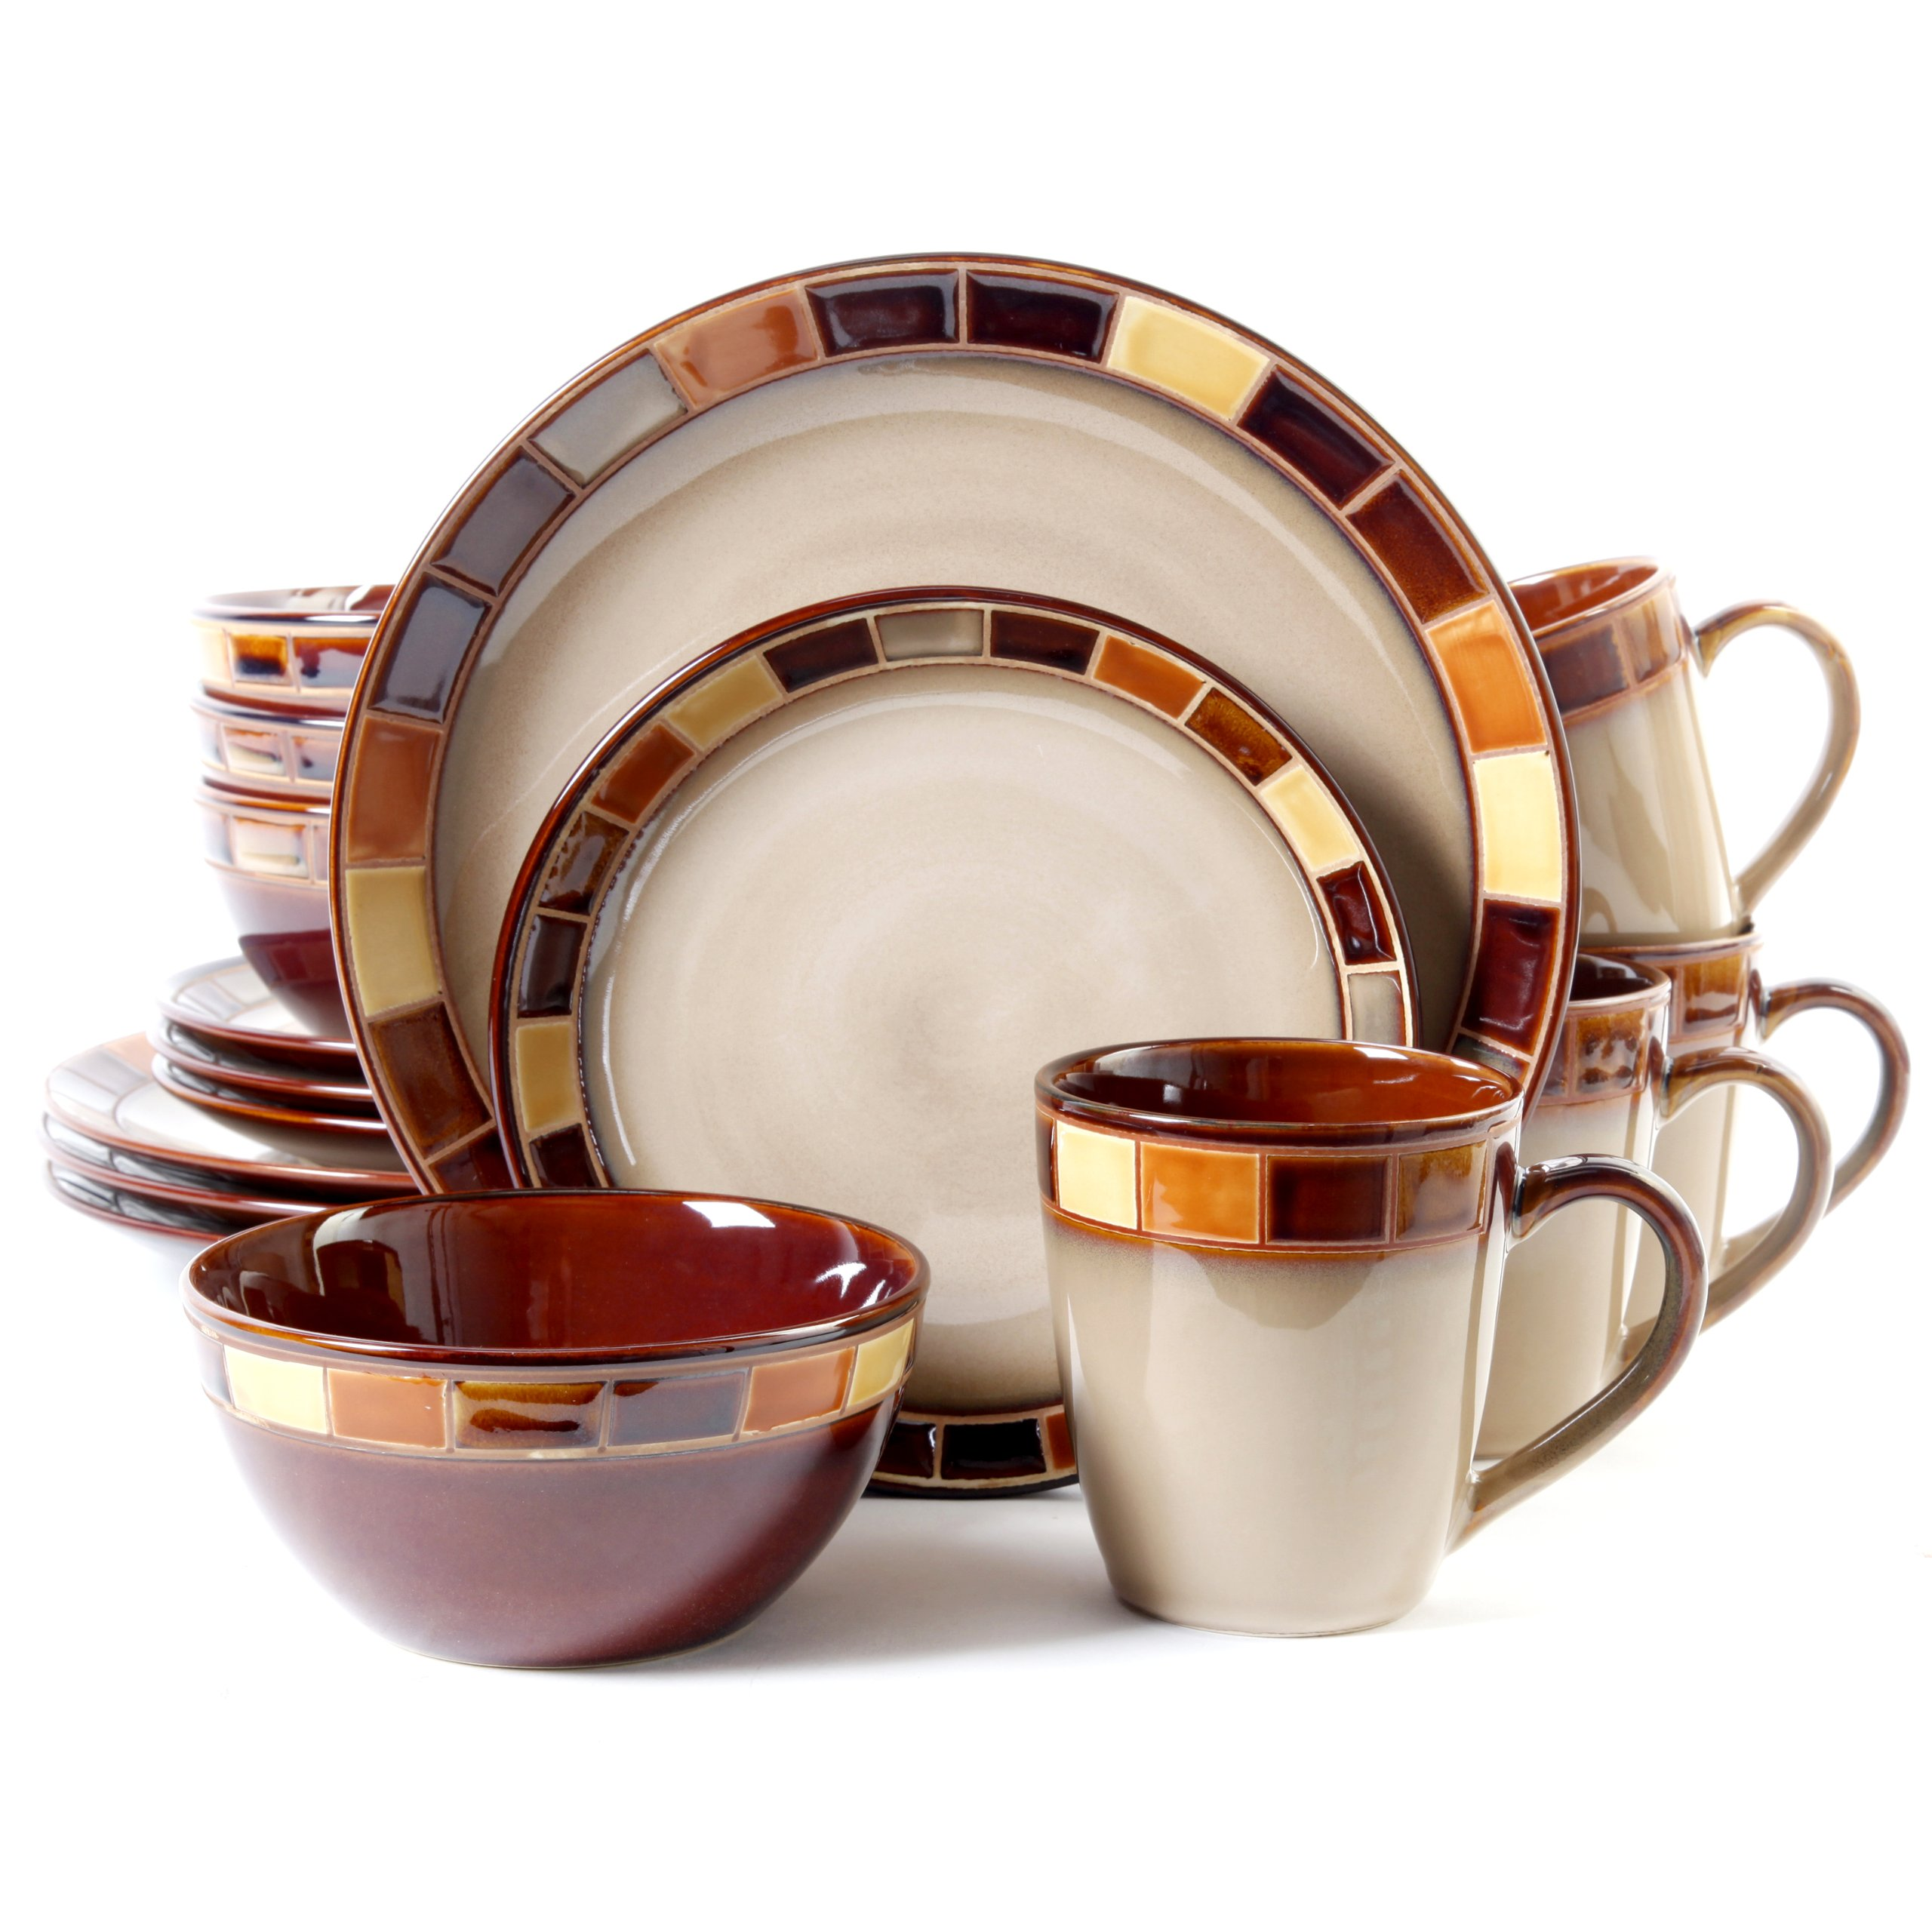 Gibson 70736.16RM Casa Estebana 16-piece Dinnerware Set Service for 4, Beige and Brown by Gibson (Image #1)